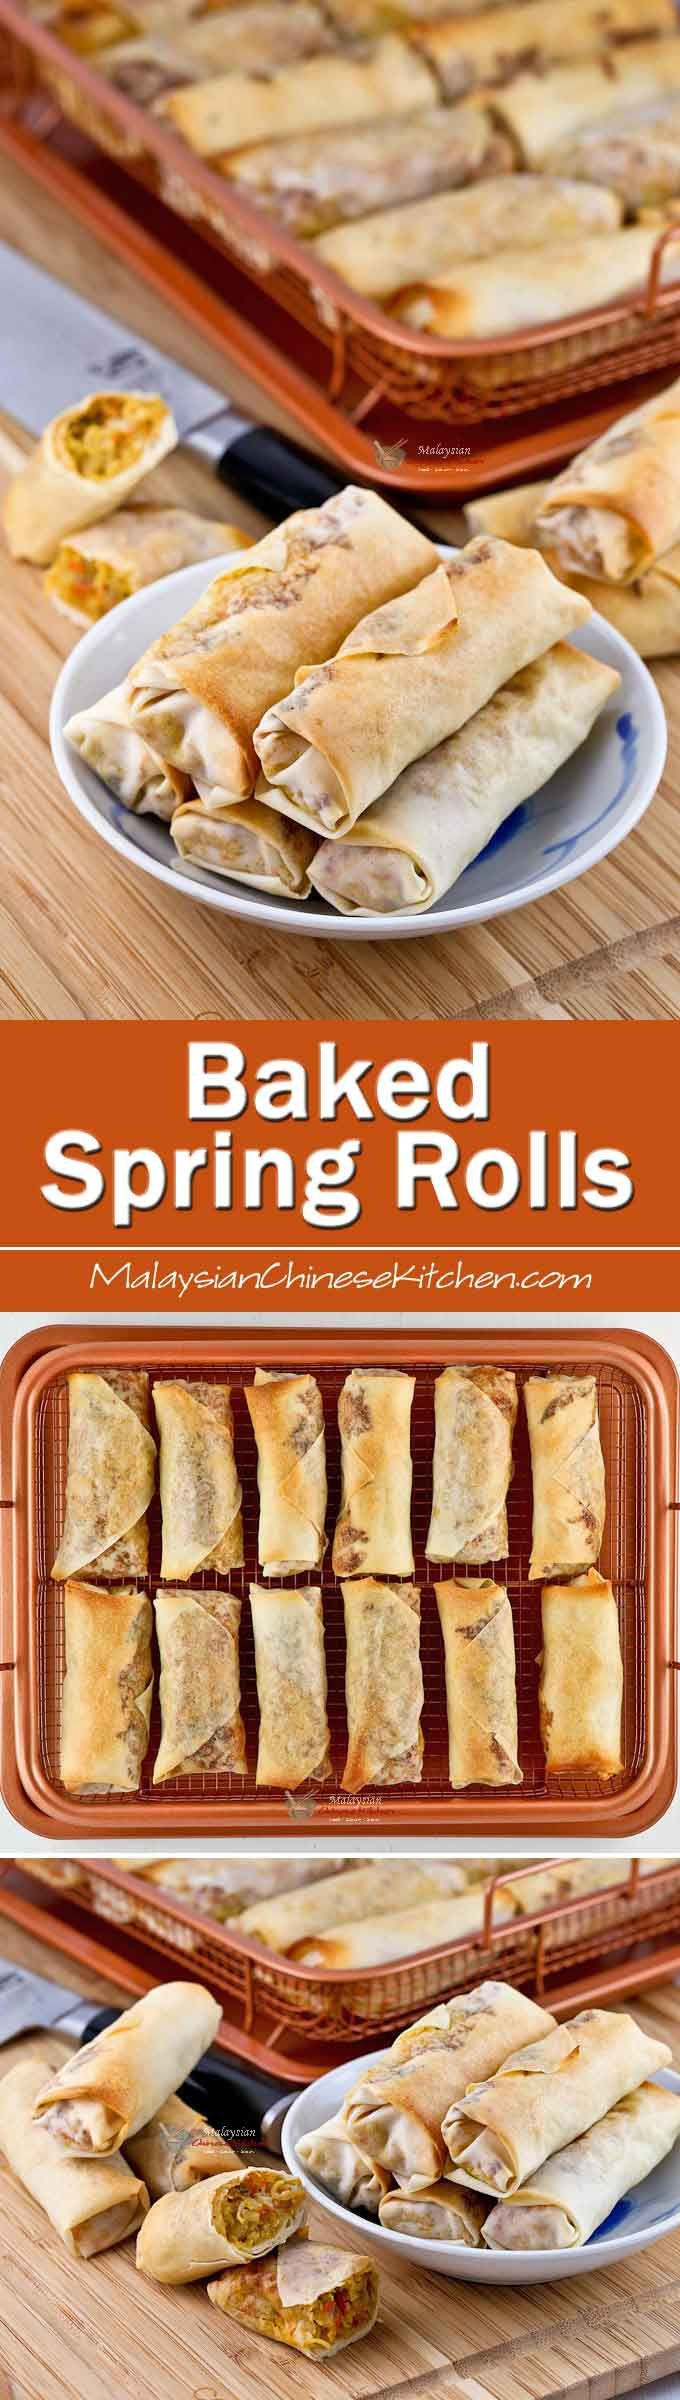 These Baked Spring Rolls filled with jicama, carrots, cabbage, and ground pork are just as delicious as their deep fried counterpart. They are crispy too!   MalaysianChineseKitchen.com